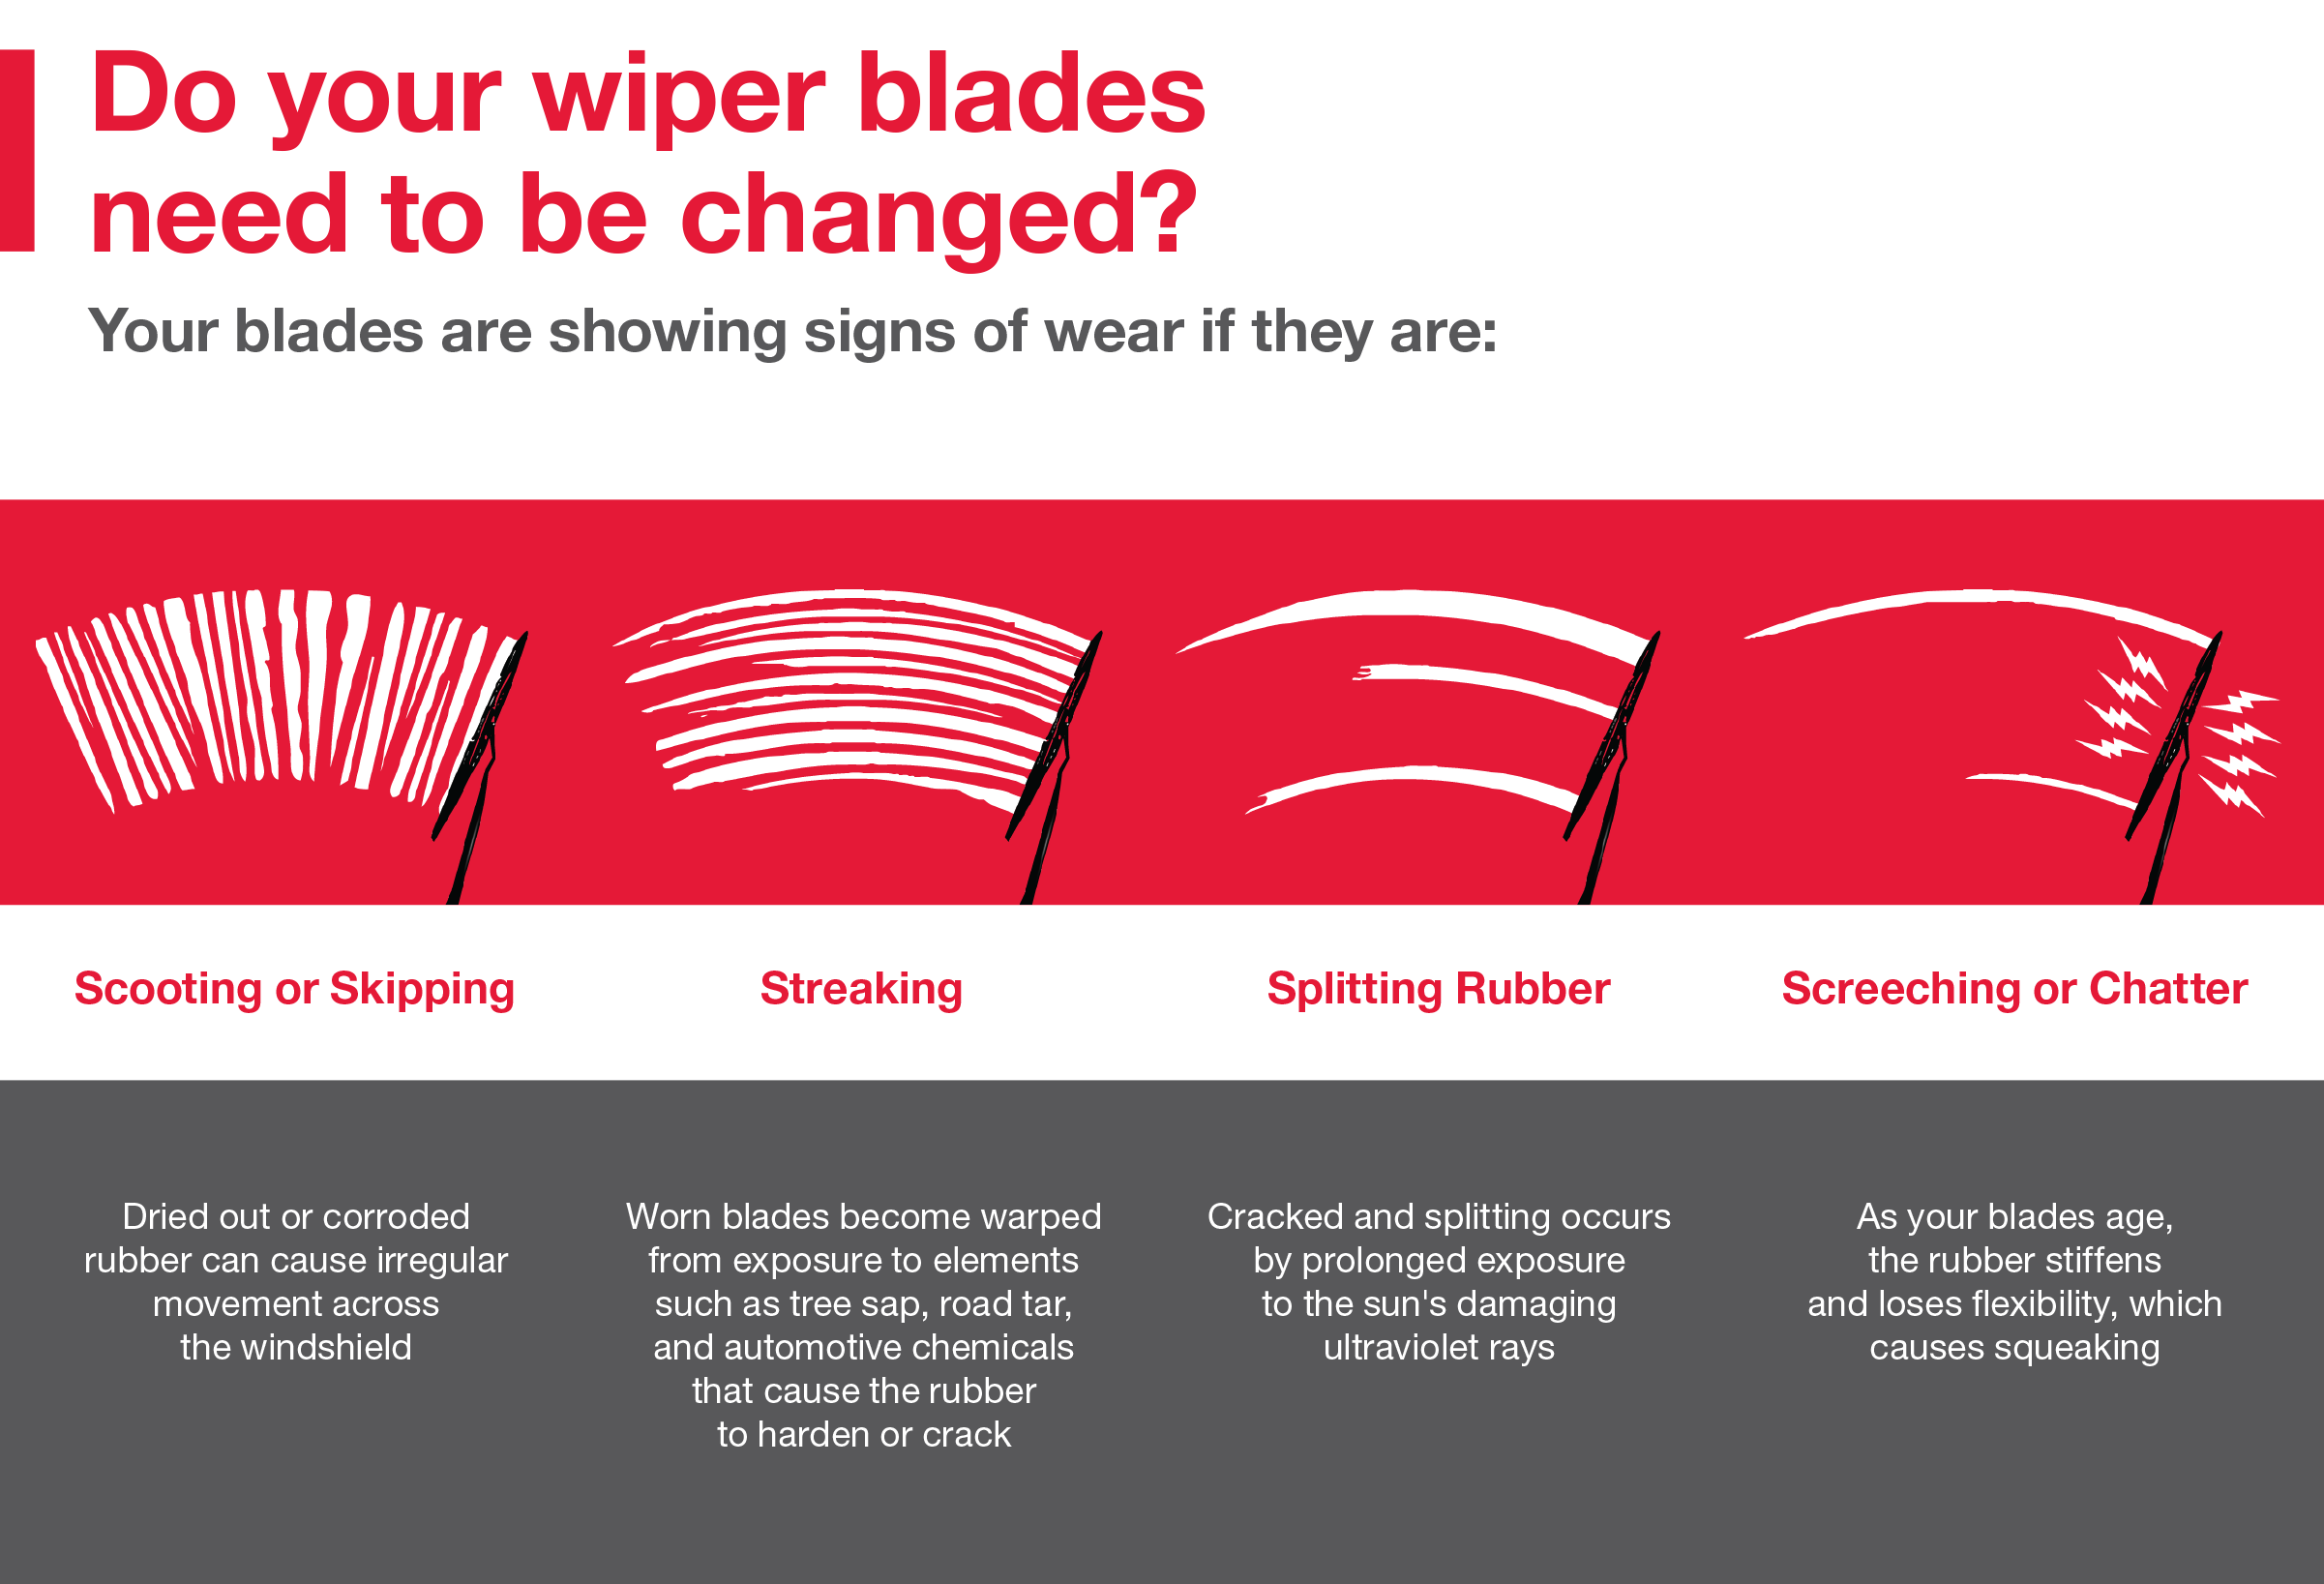 Do your wiper blades need to be changed? Call your local dealer for more info: 231-486-0885